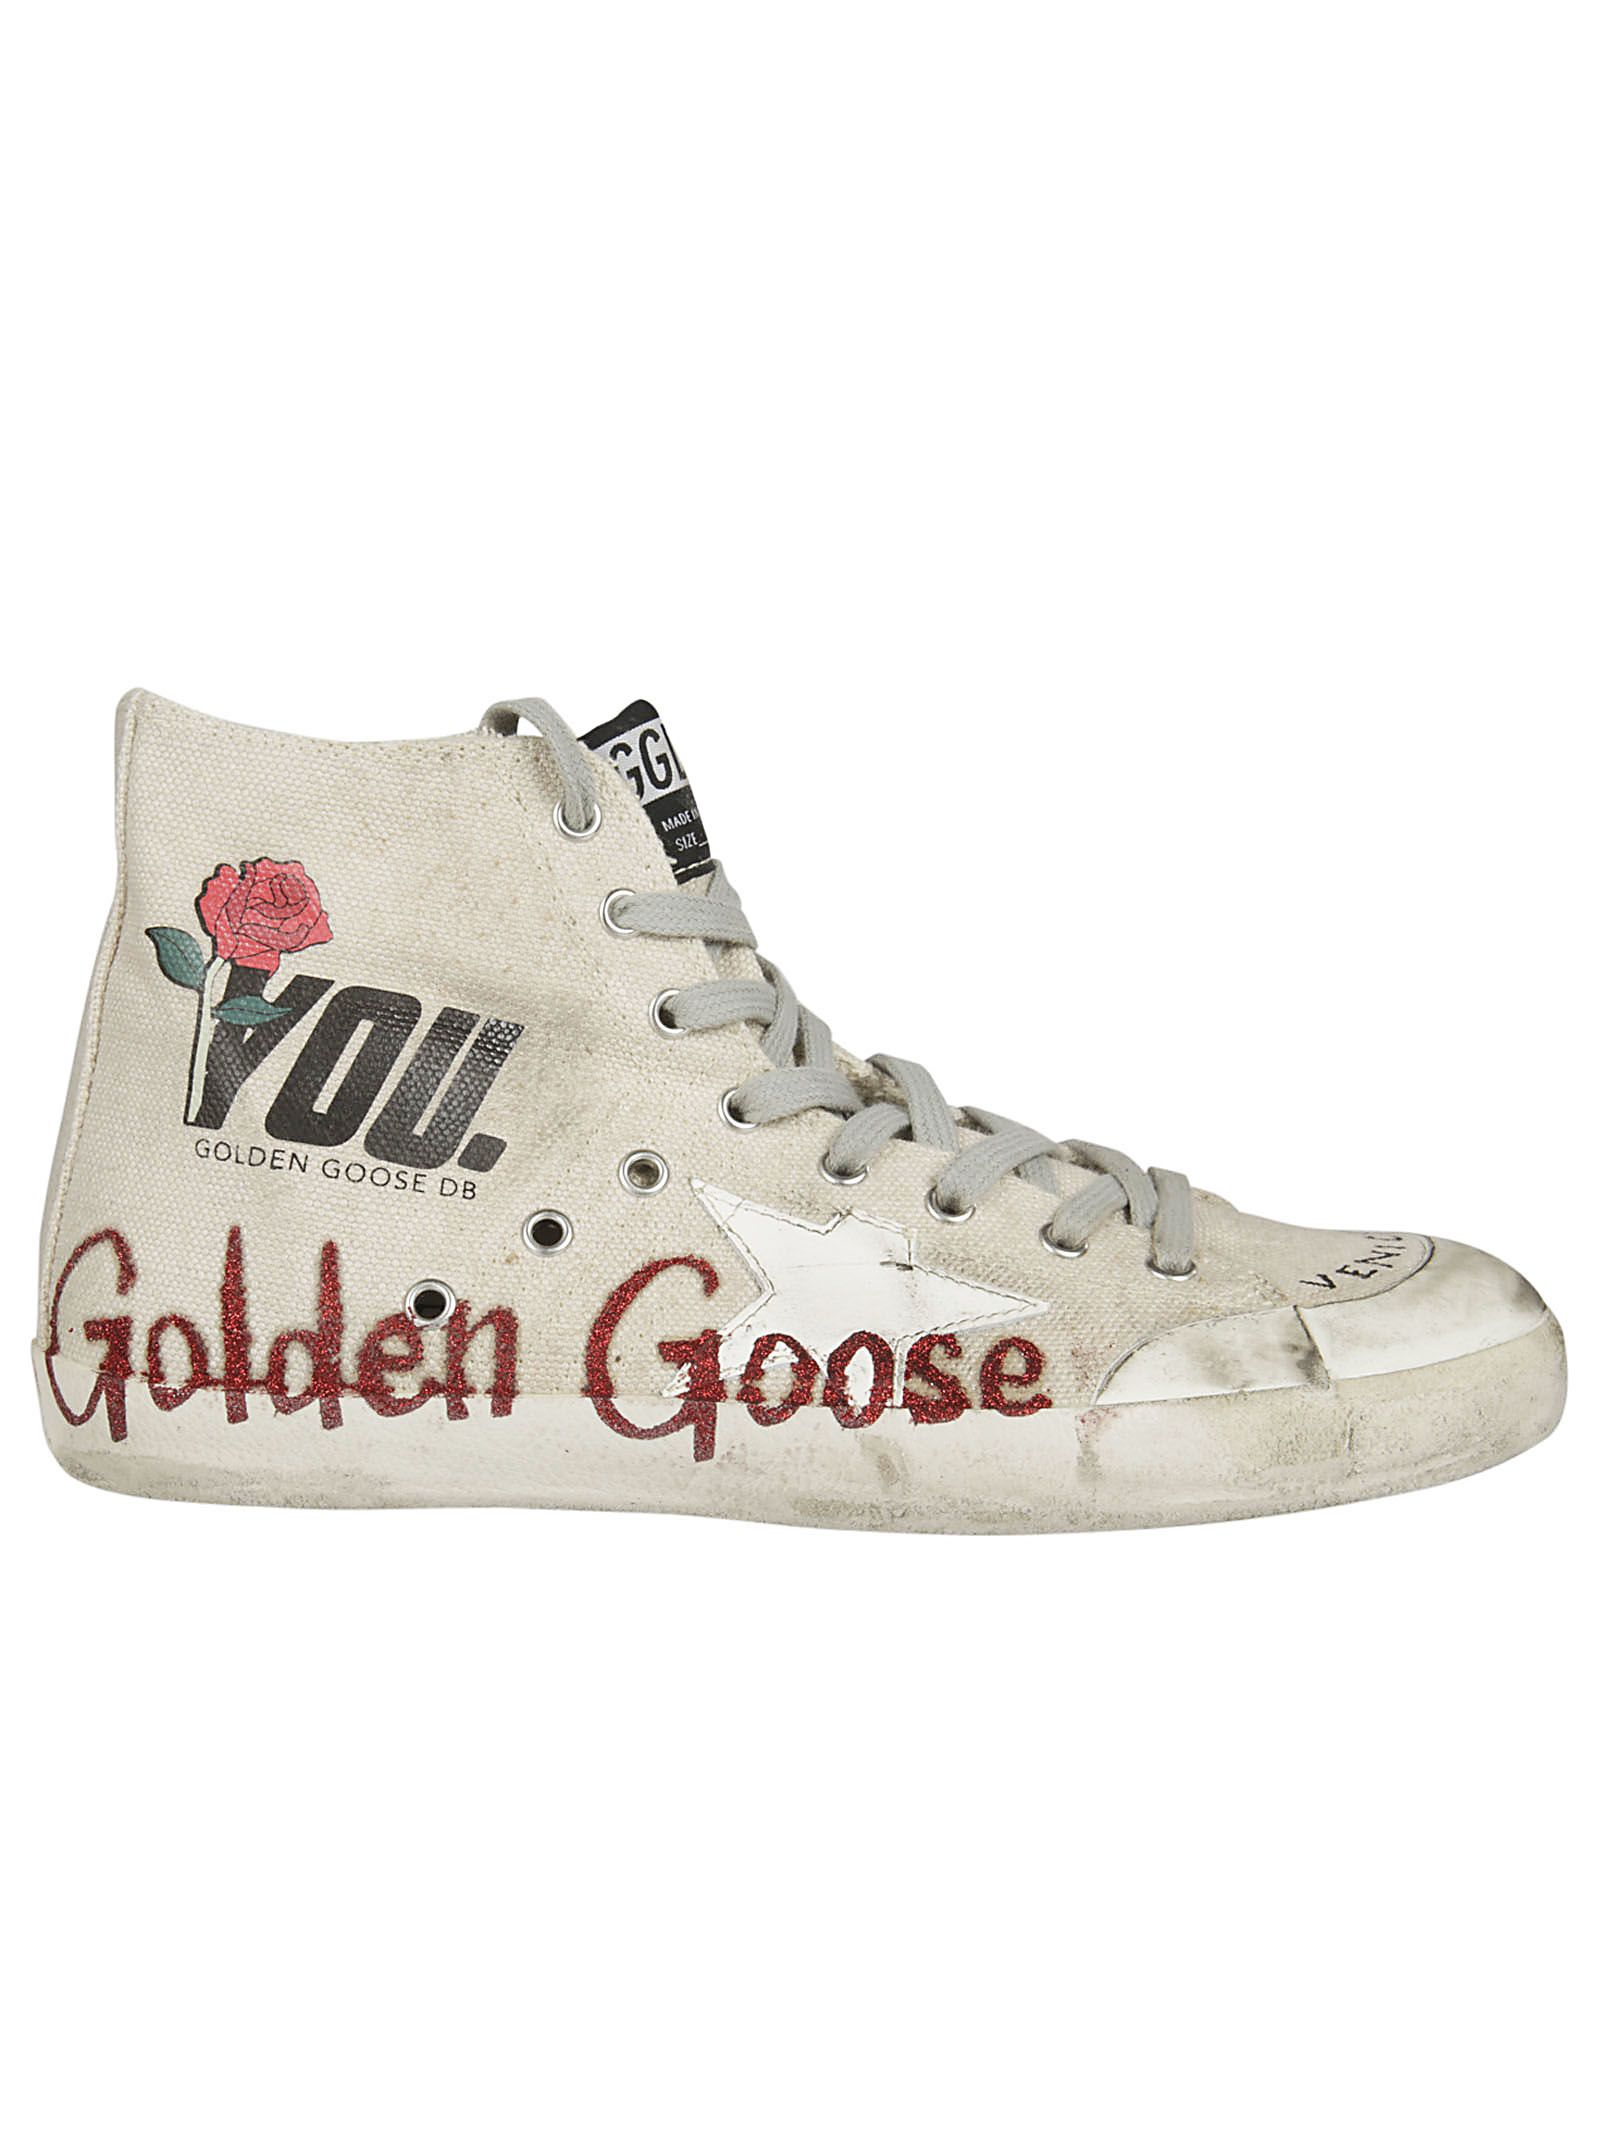 Golden Goose Francy Venice Sneakers cheap exclusive PvlKdC